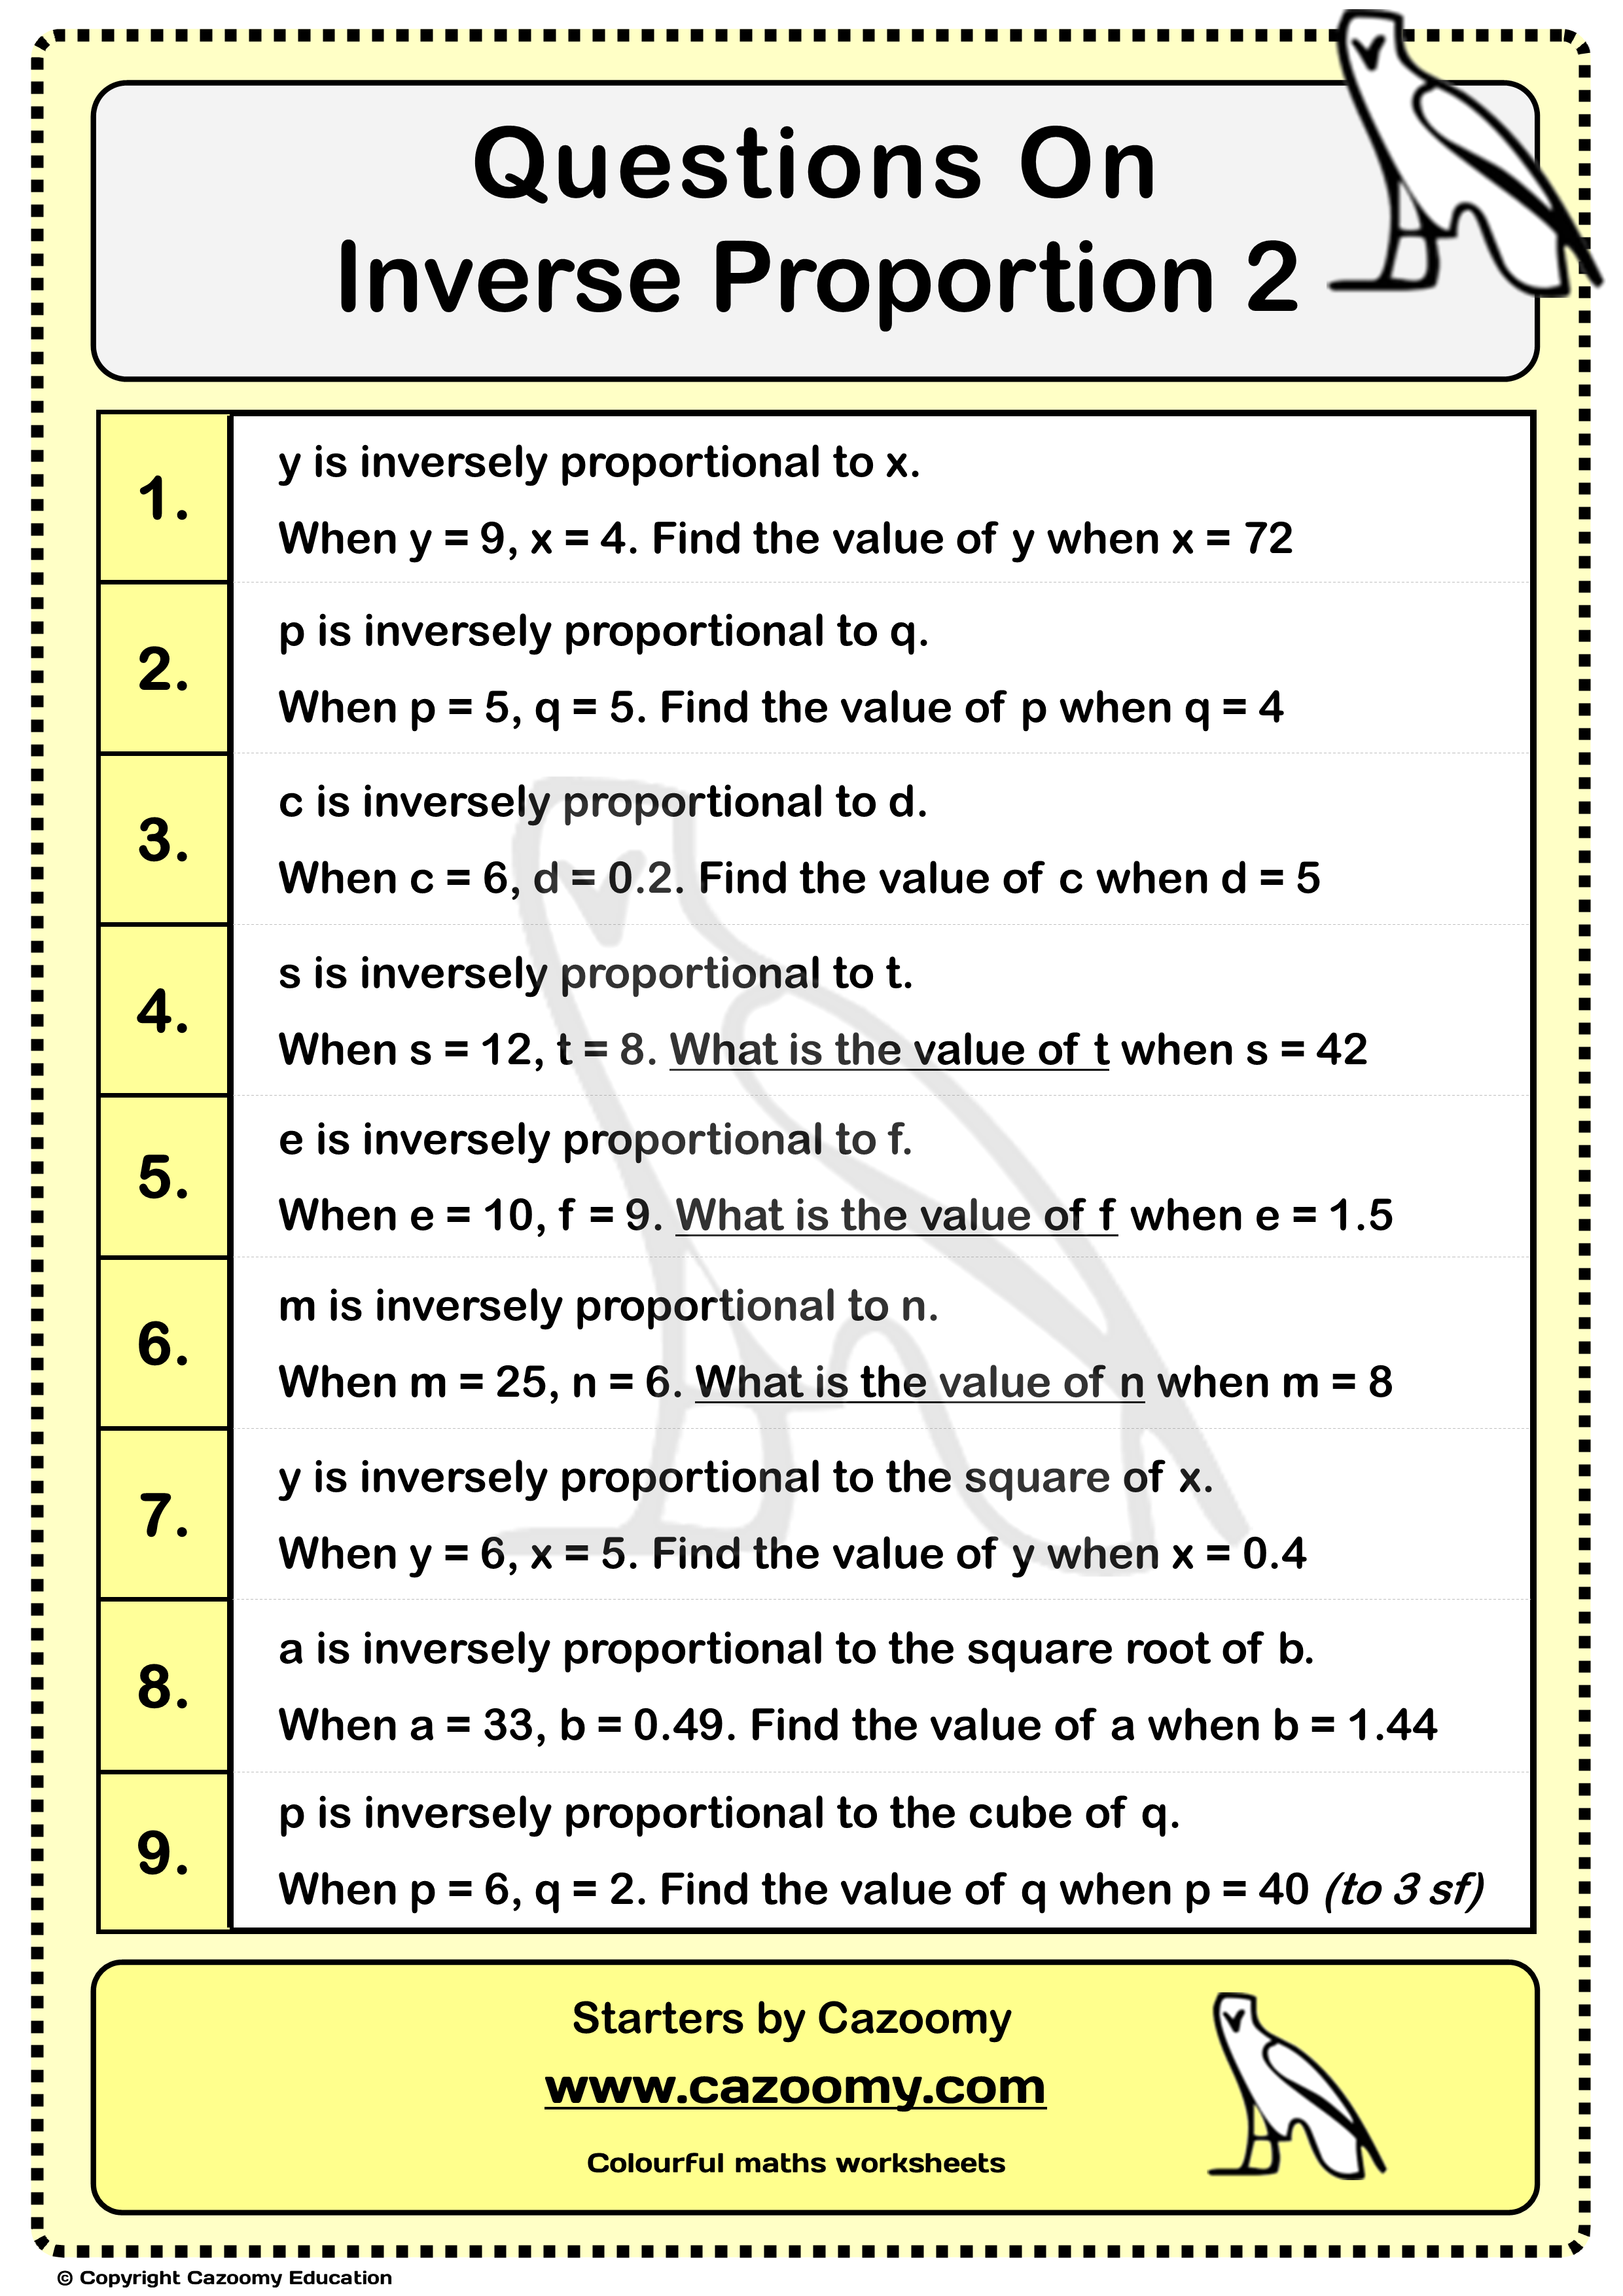 9 Questions On Inverse Proportionality In